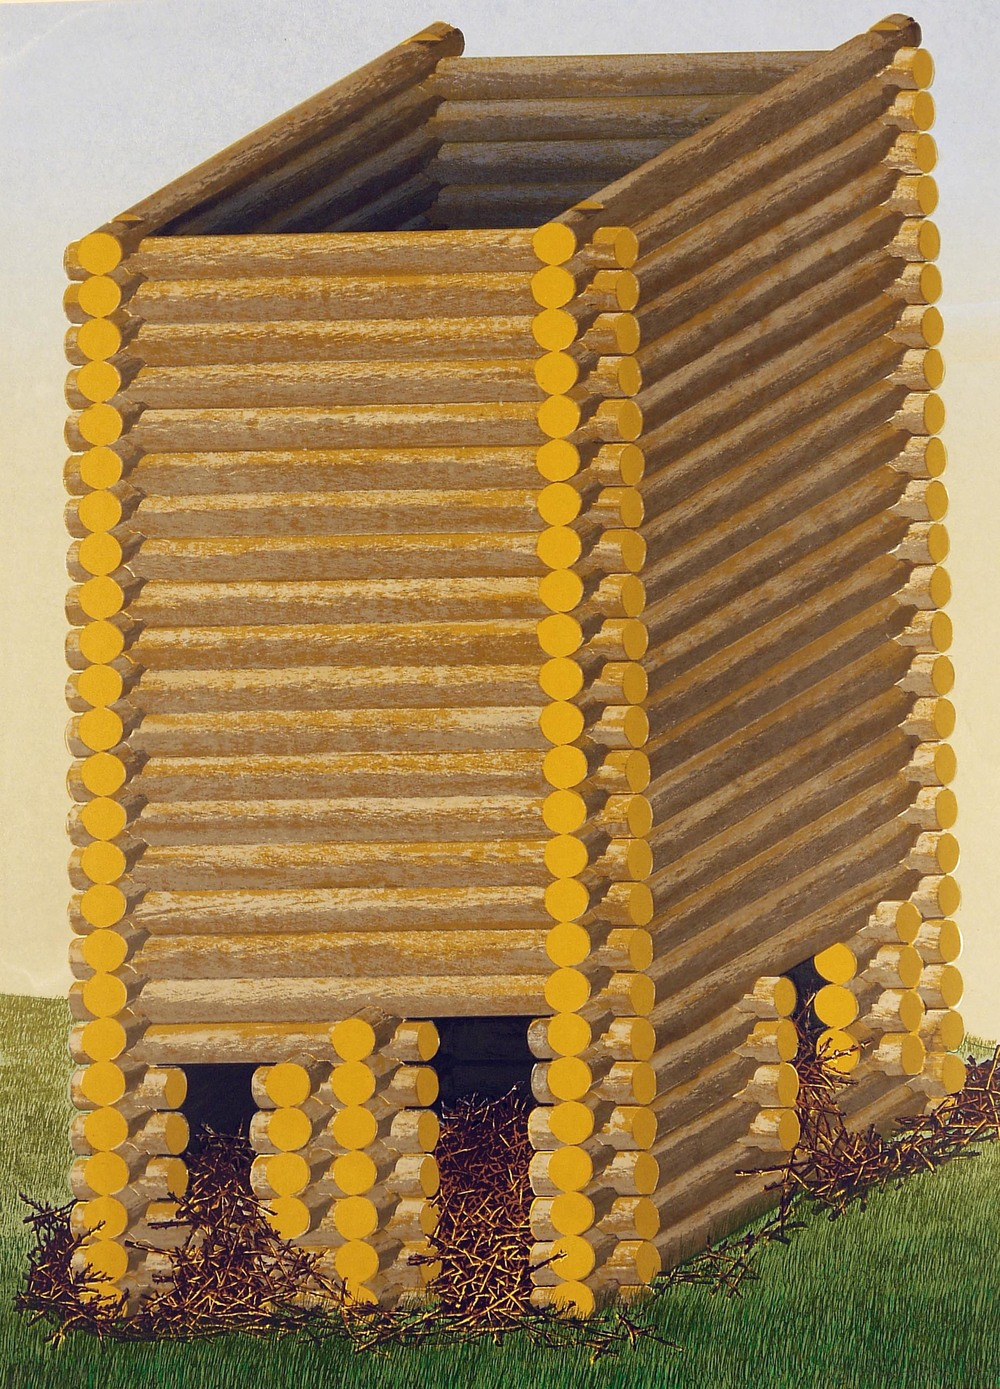 7. Log Tower with Twigs, 2012, 22 x 30 inches Screenprint, AP:1 of 4 $700 .jpg